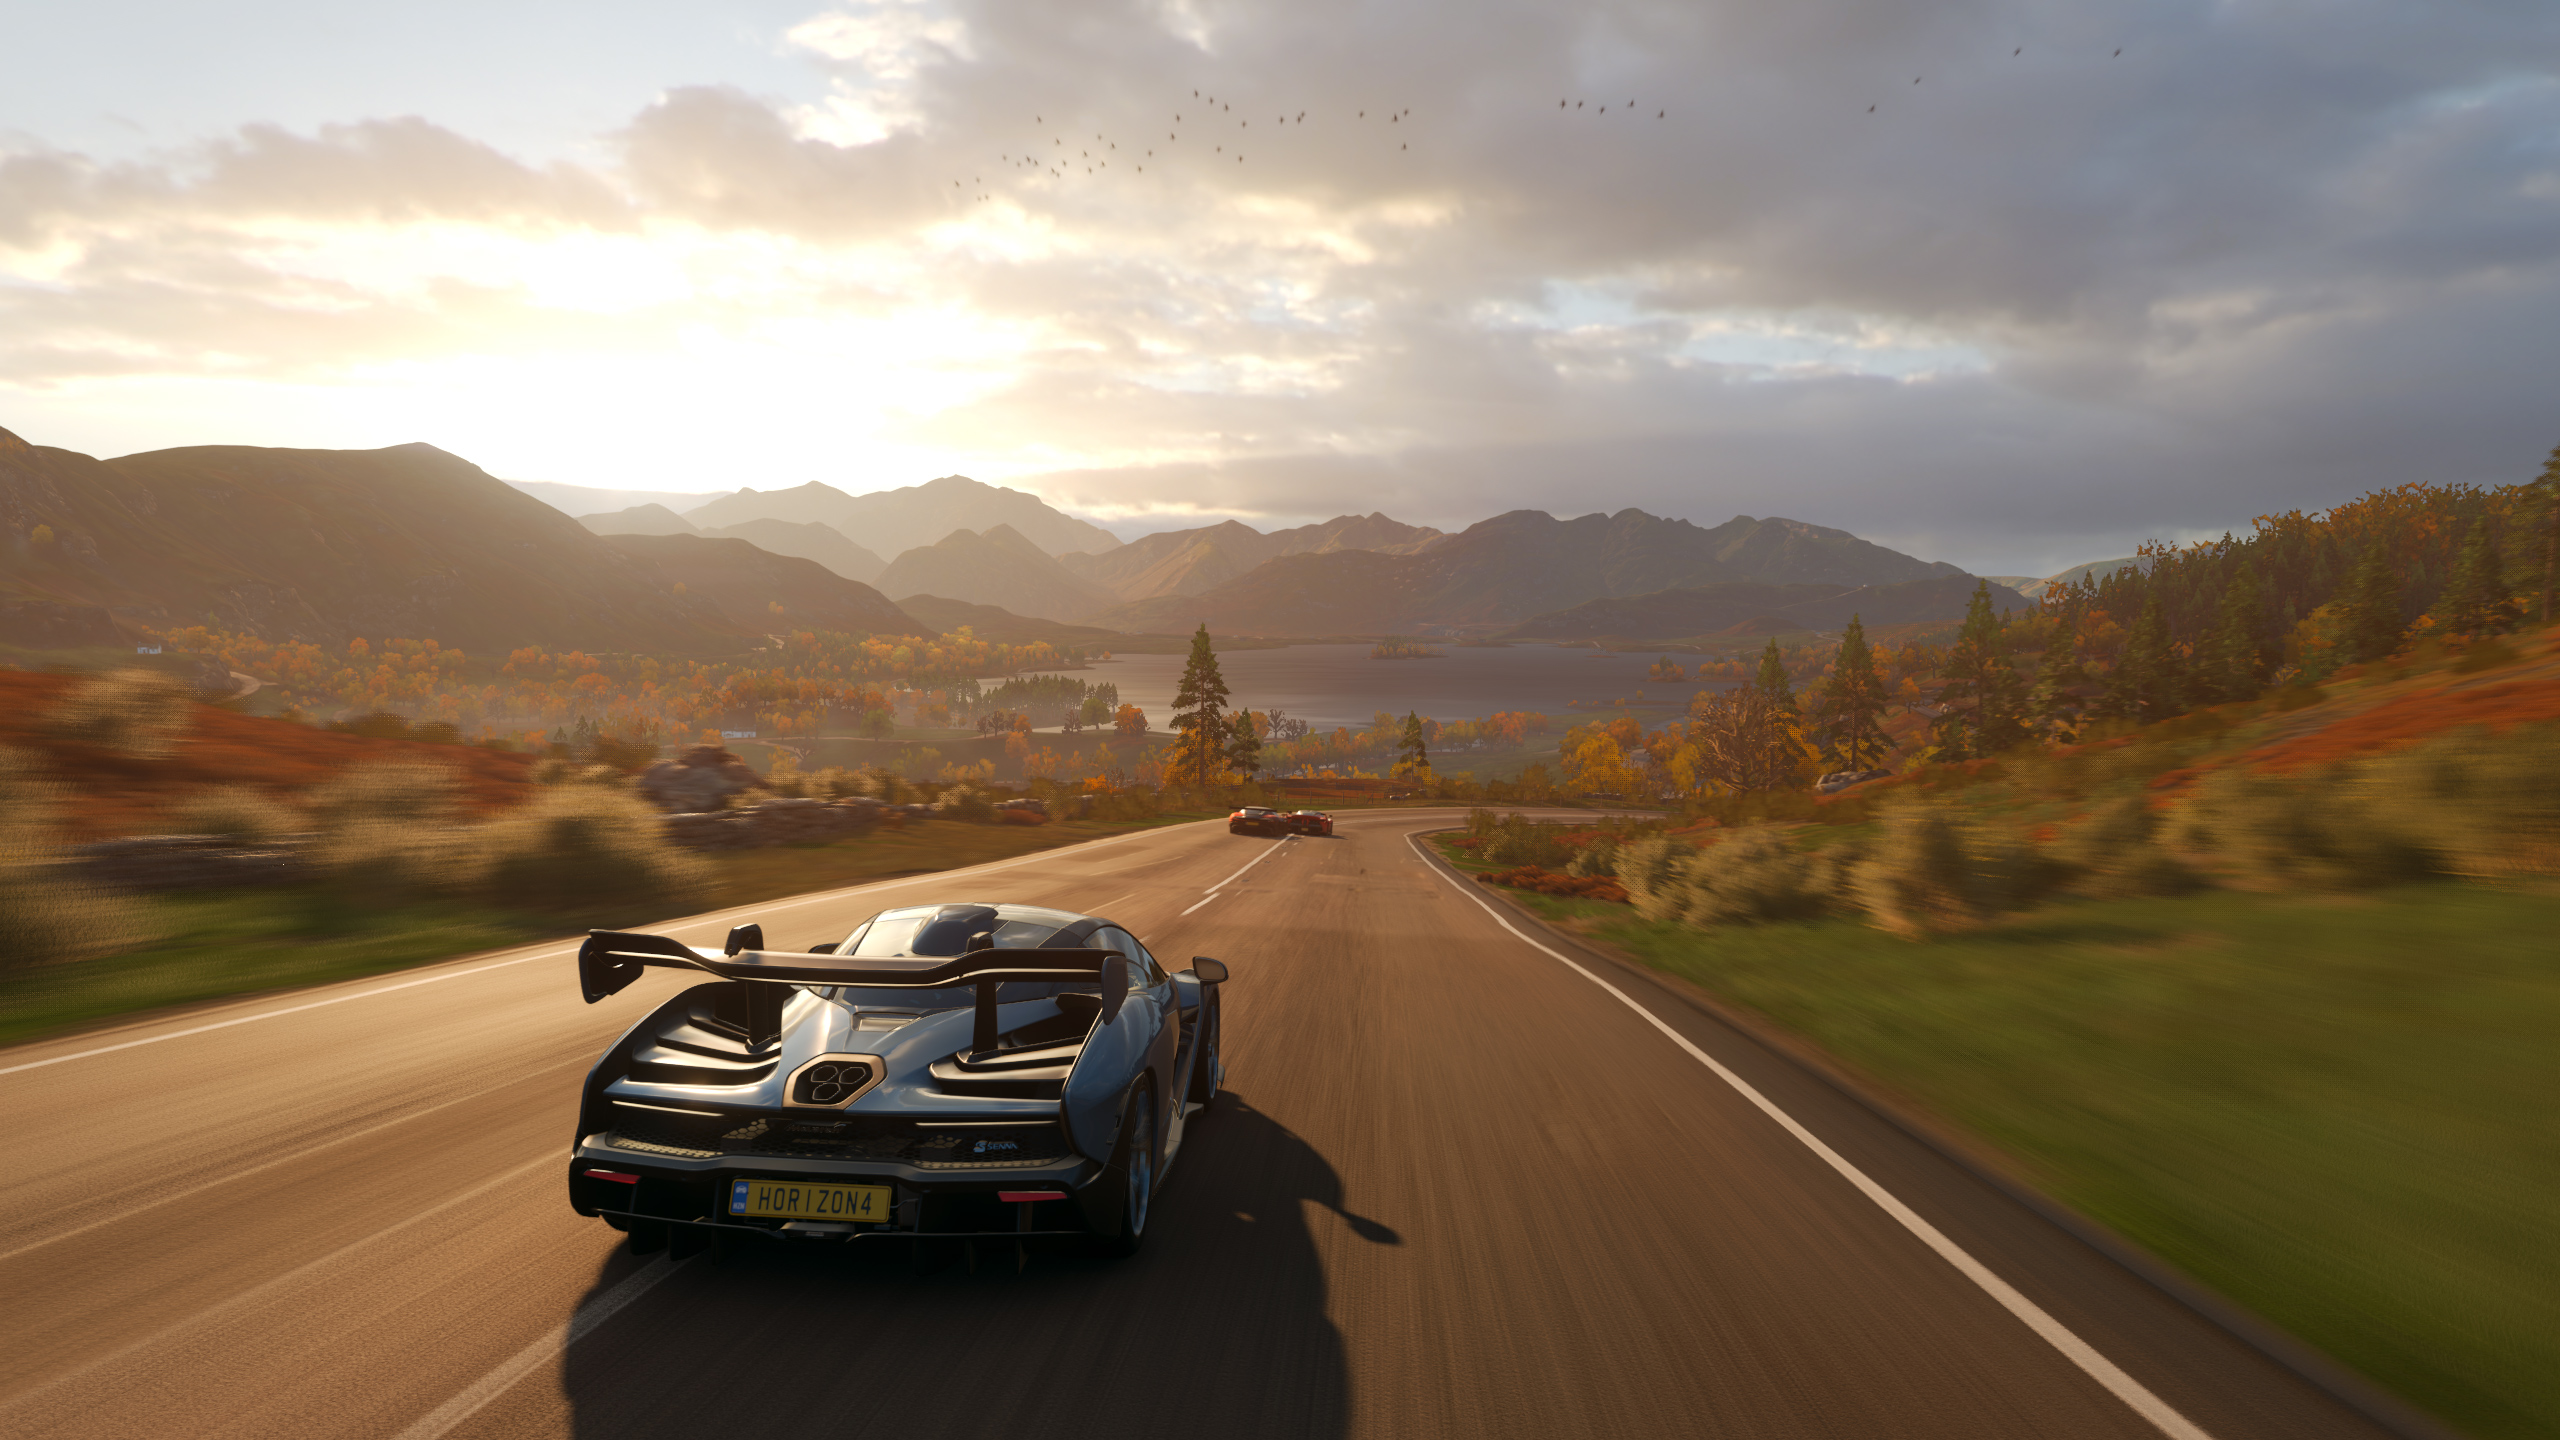 Forza Horizon 4 2019, HD Games, 4k Wallpapers, Images, Backgrounds